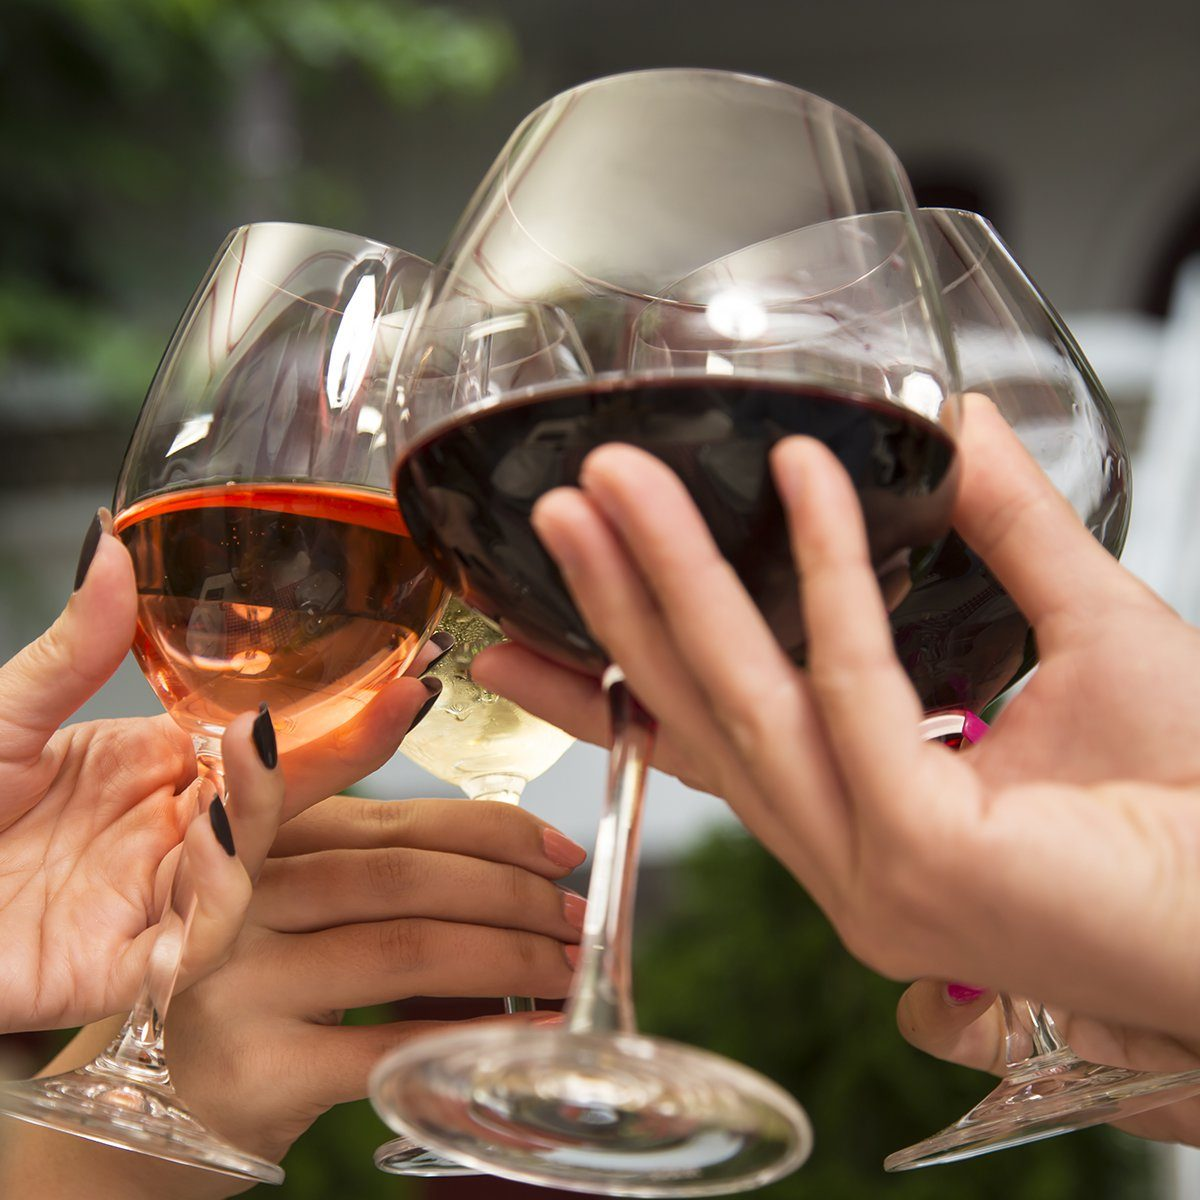 Group of unrecognizable people celebrating while holding wine glasses and toasting.